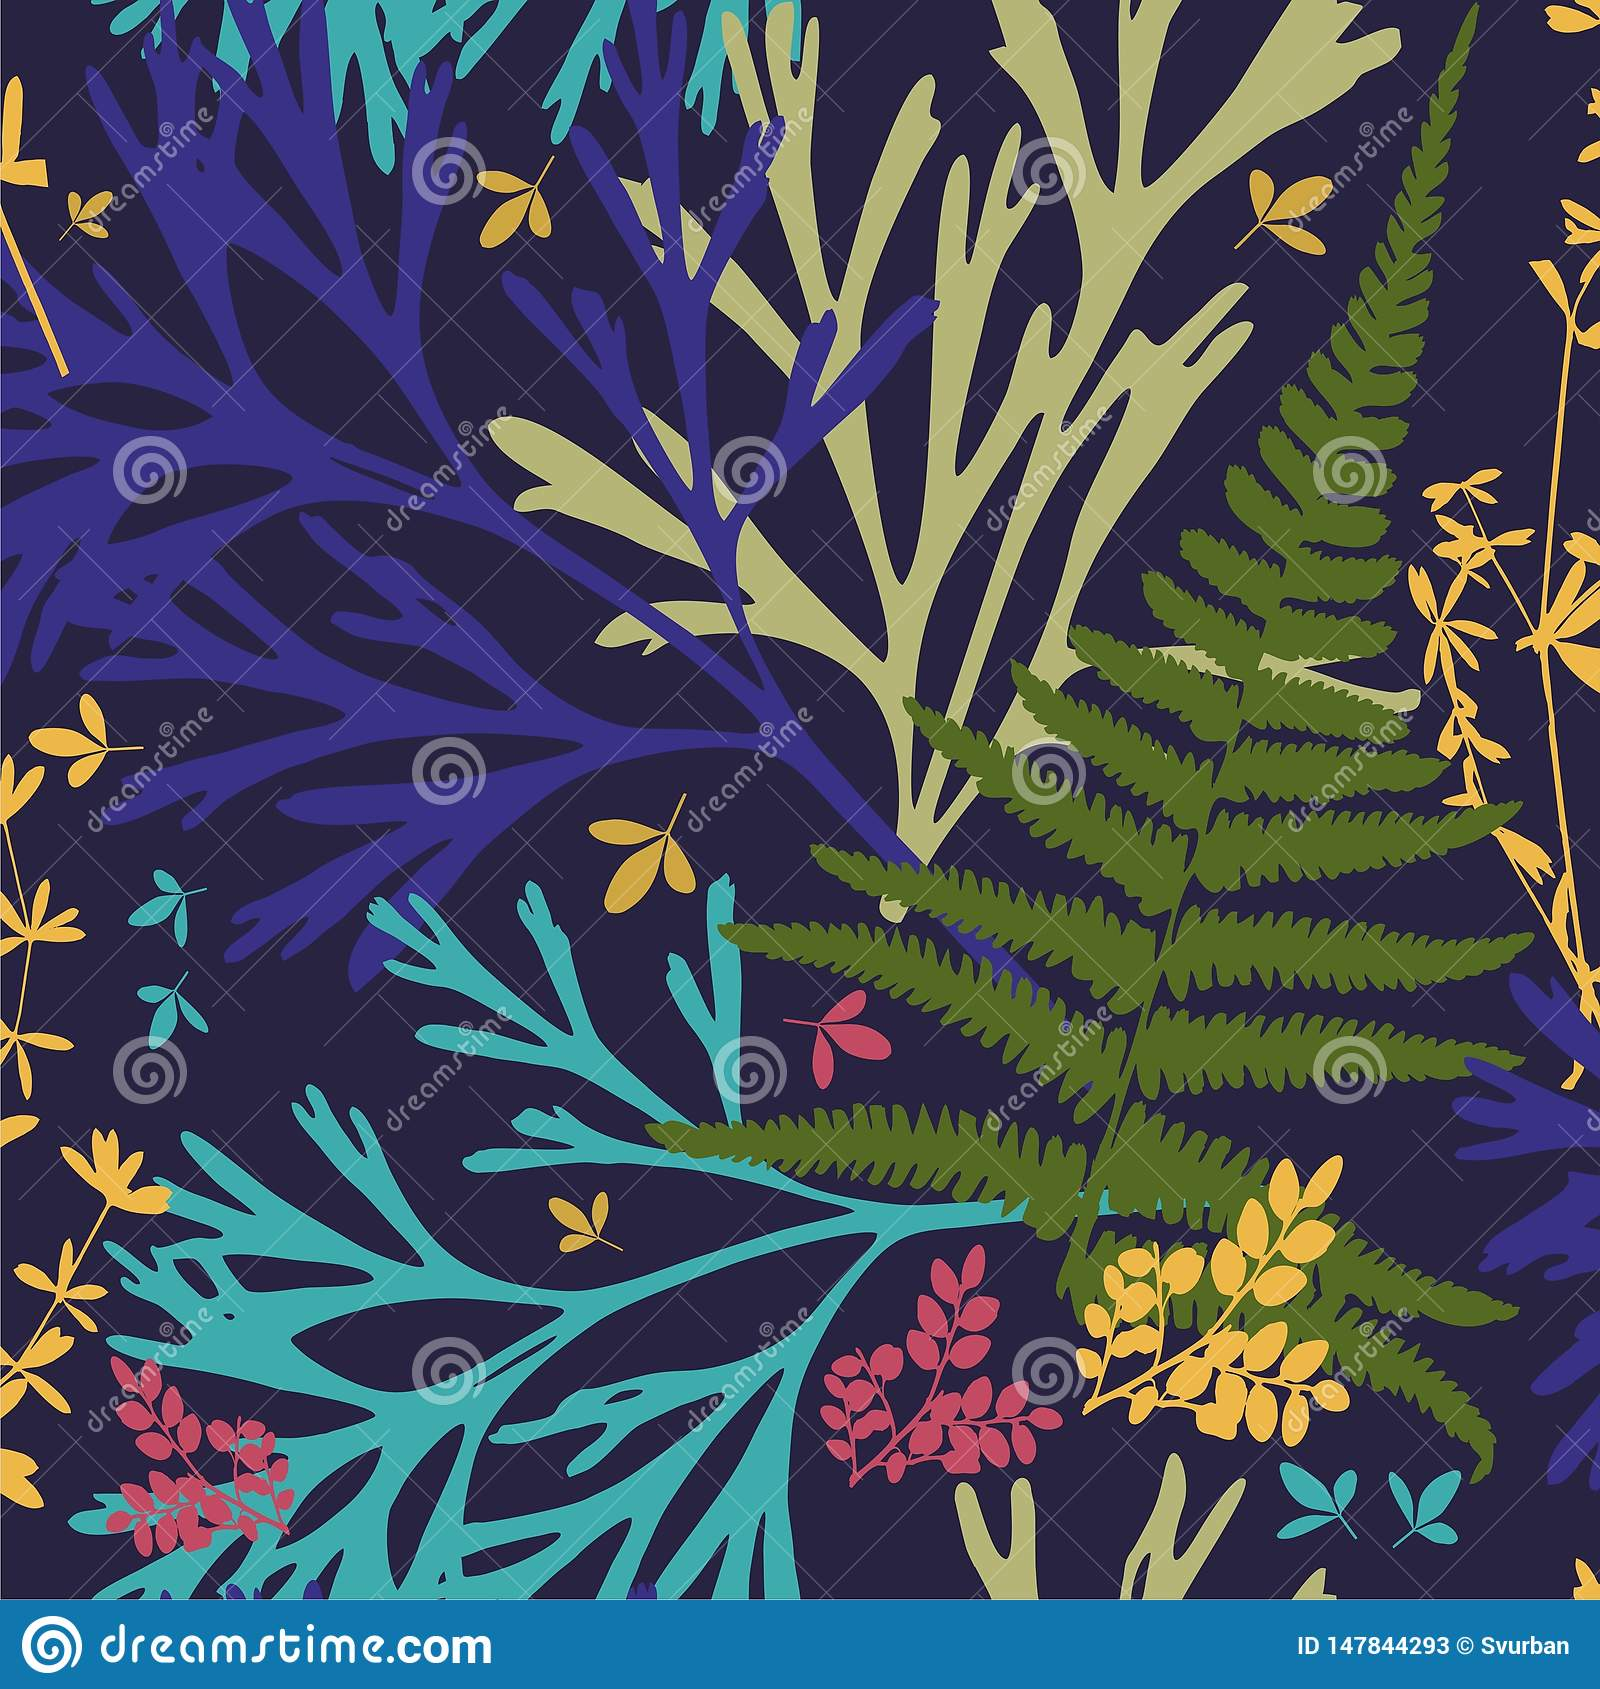 Template. Herbarium with wild flowers, branches, leaves. Botanical background on blue